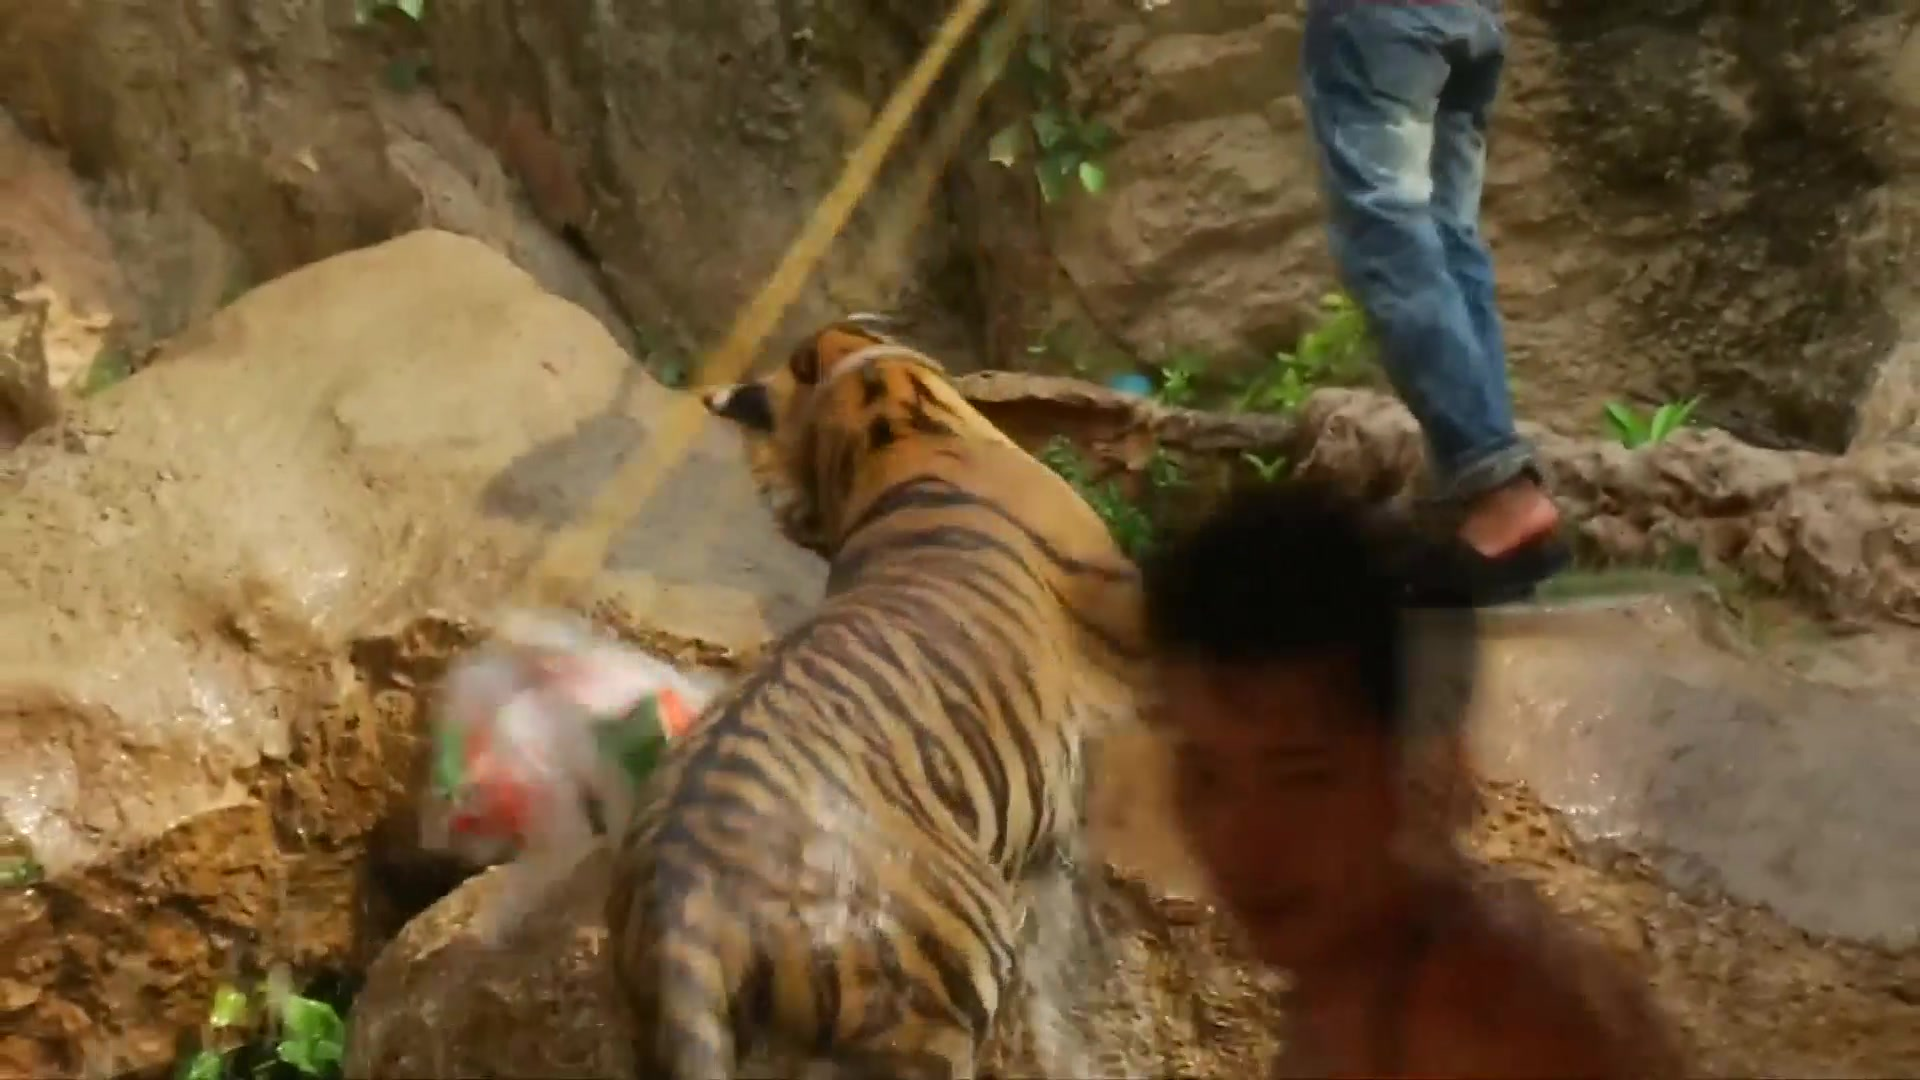 Tiger Temple Looses Bid to Extend Zoo License